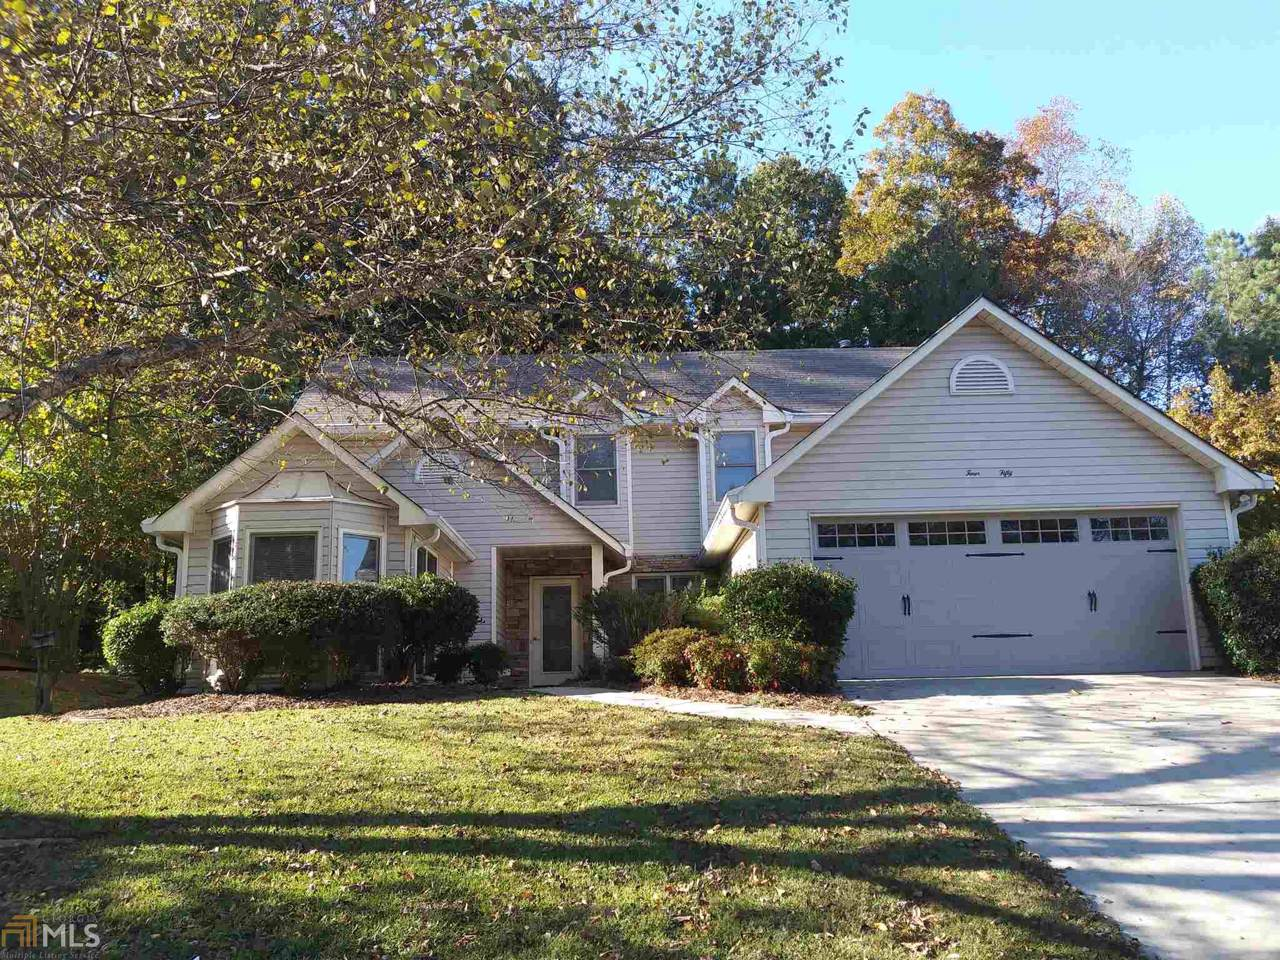 450 Clearwater Pl - Photo 1